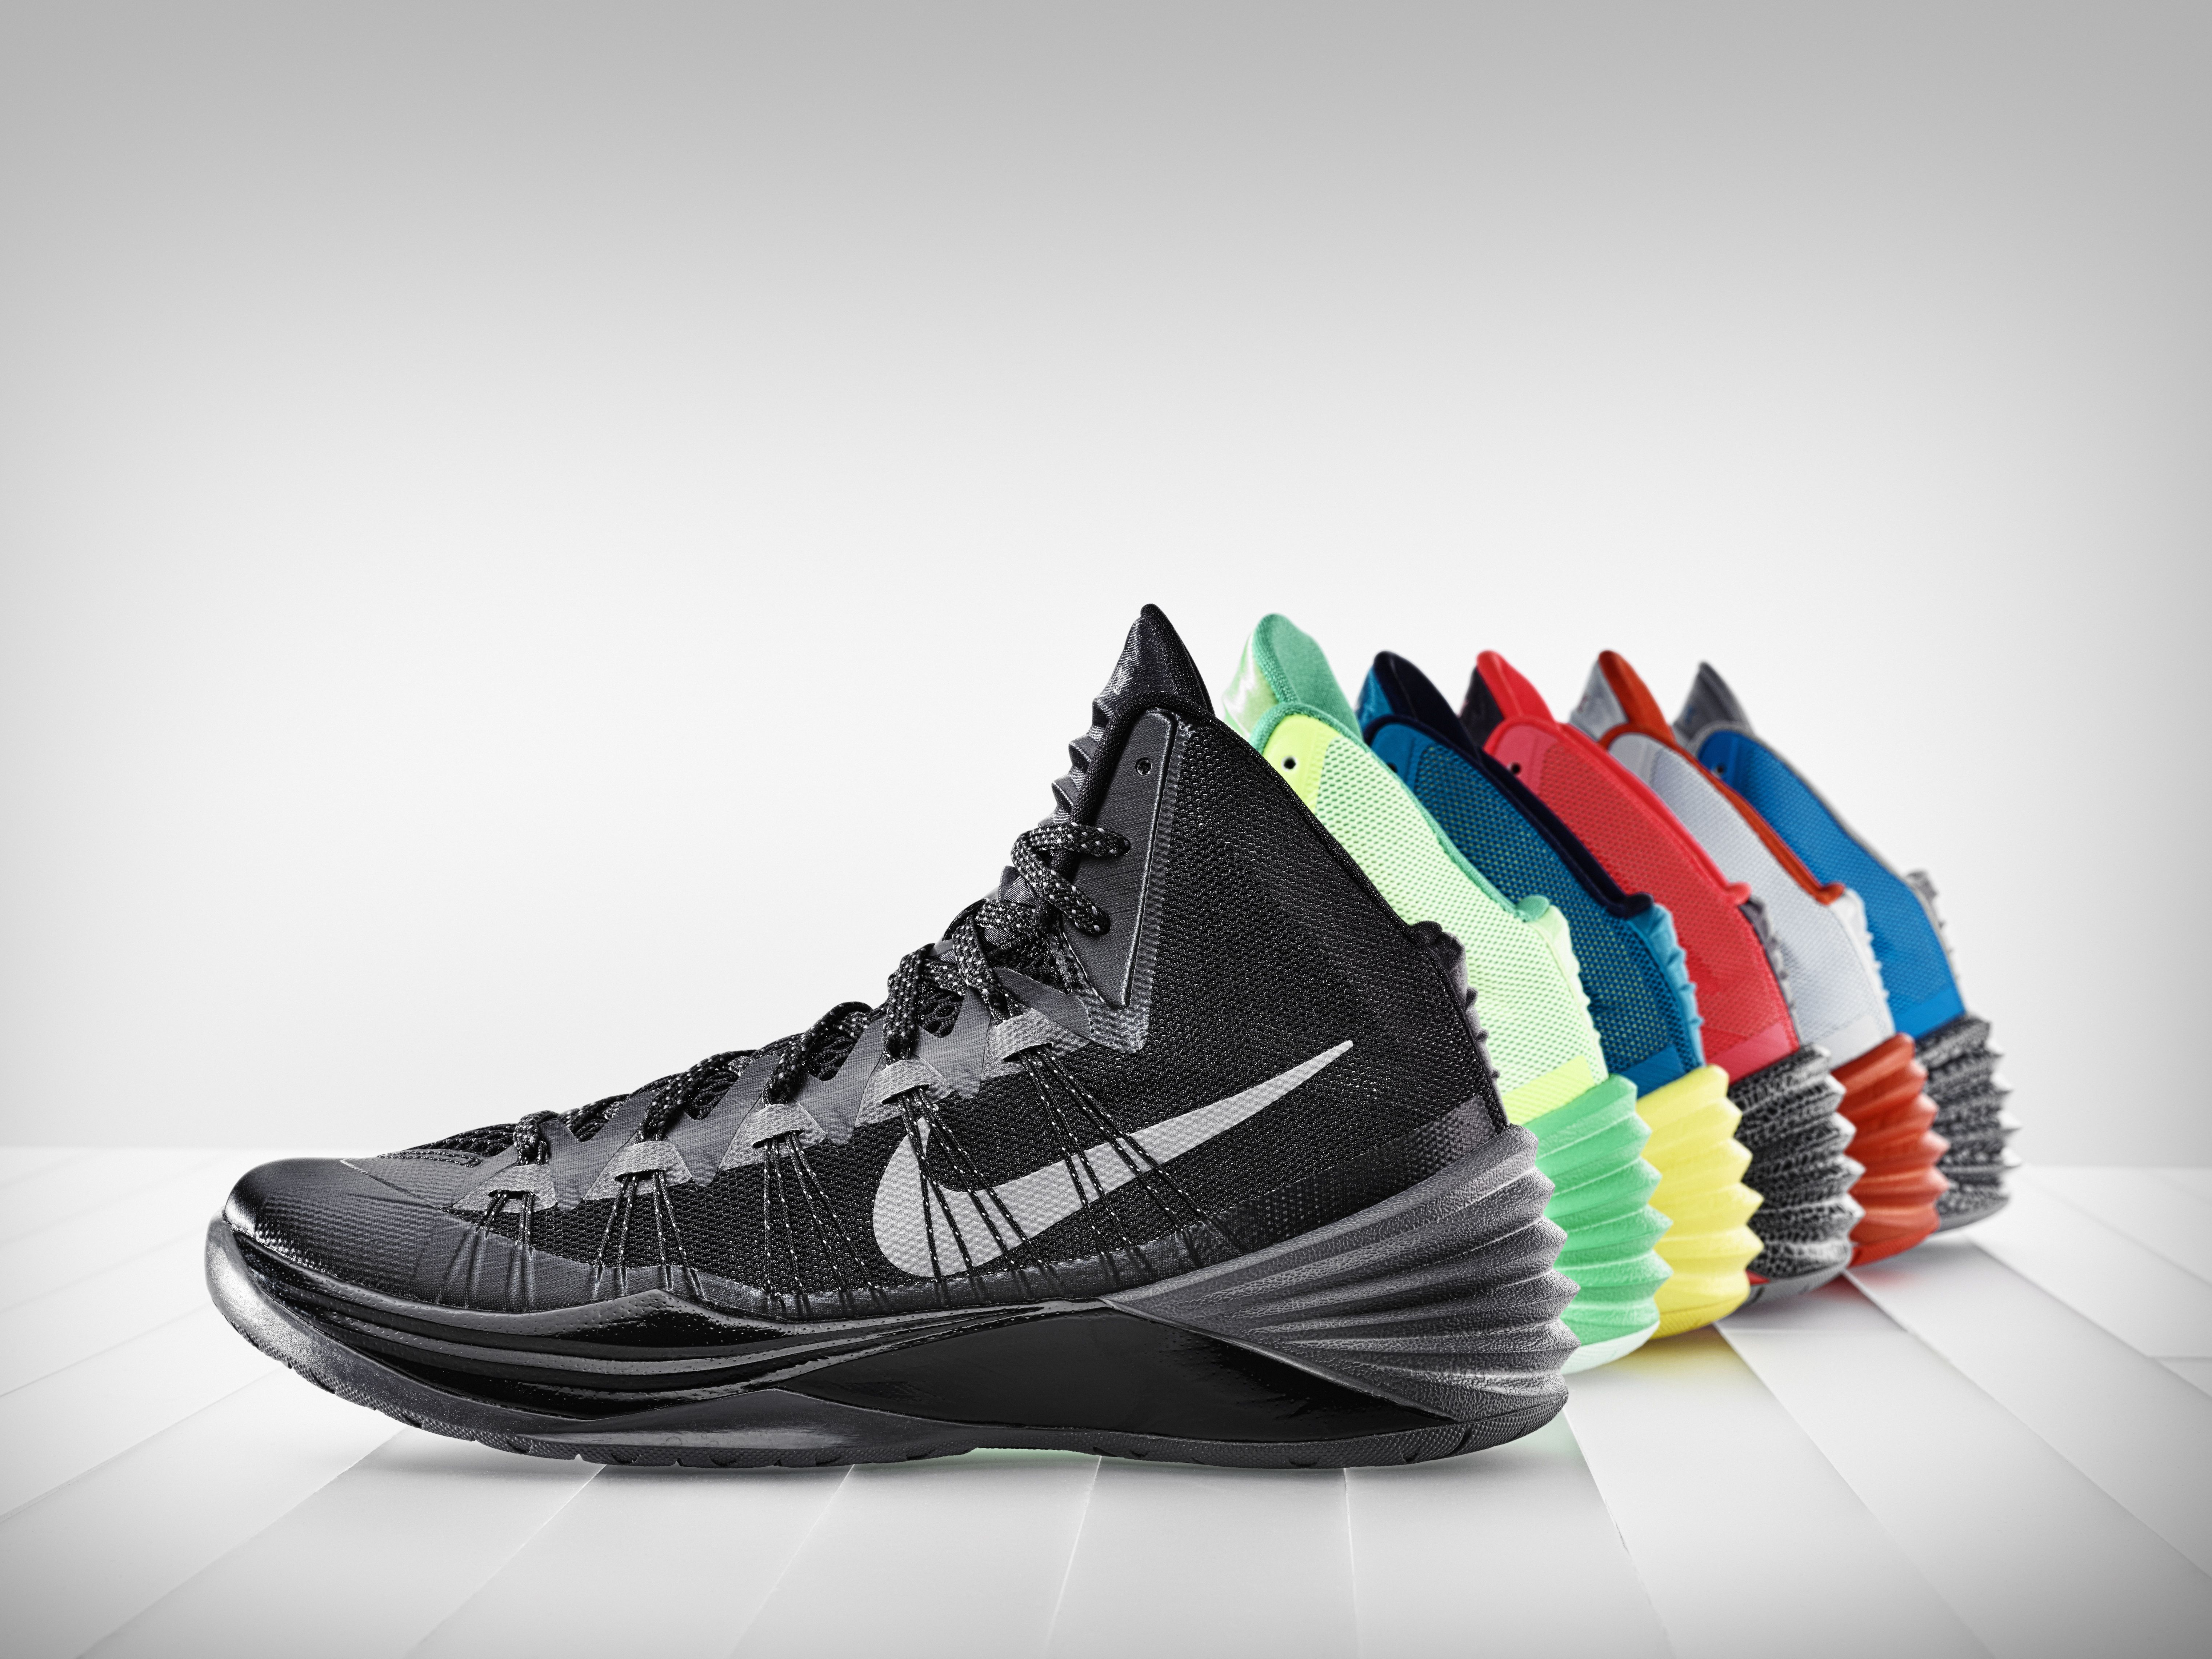 Explore Nike Basketball, Casual Shoes, and more!